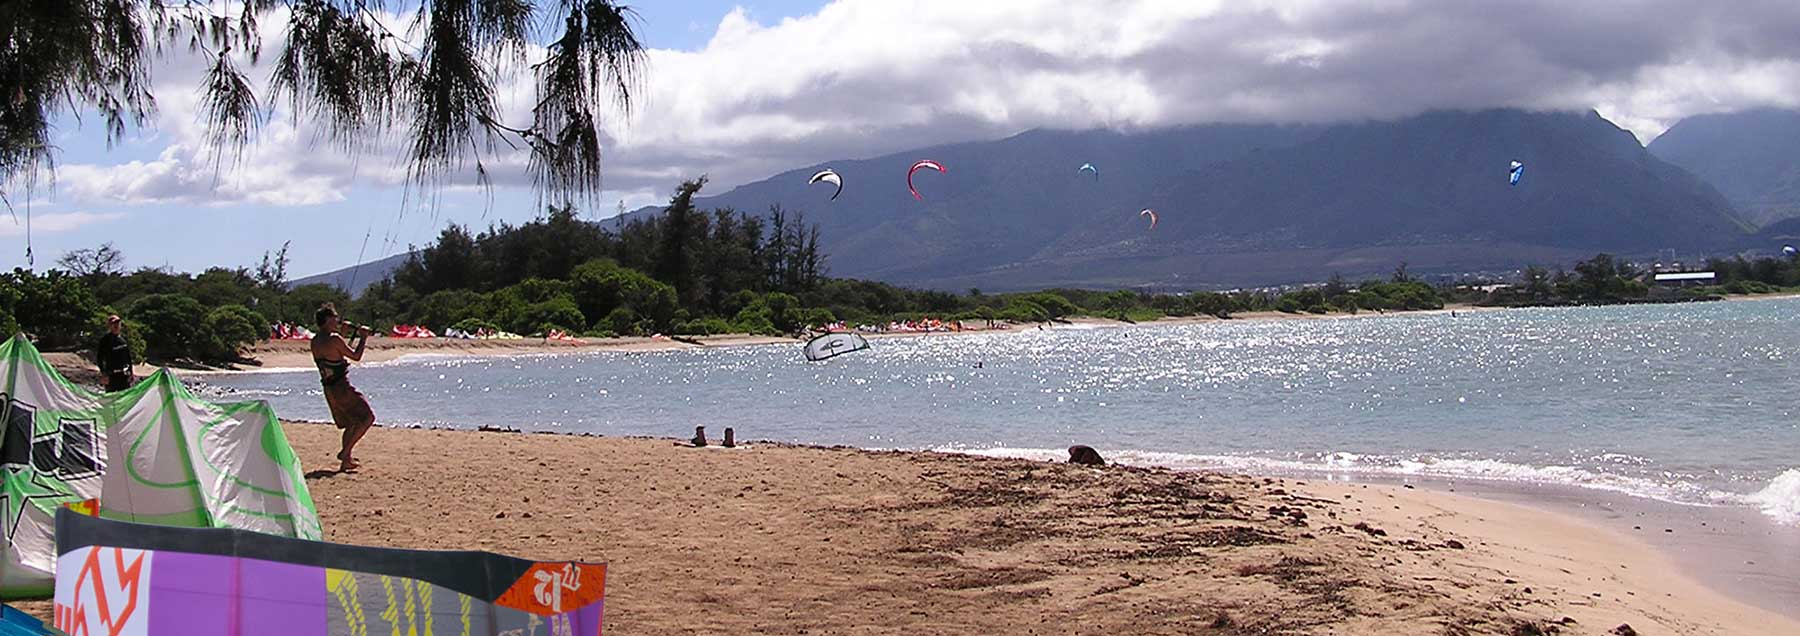 Kiteboarding on Kite Beach Maui, Hawaii